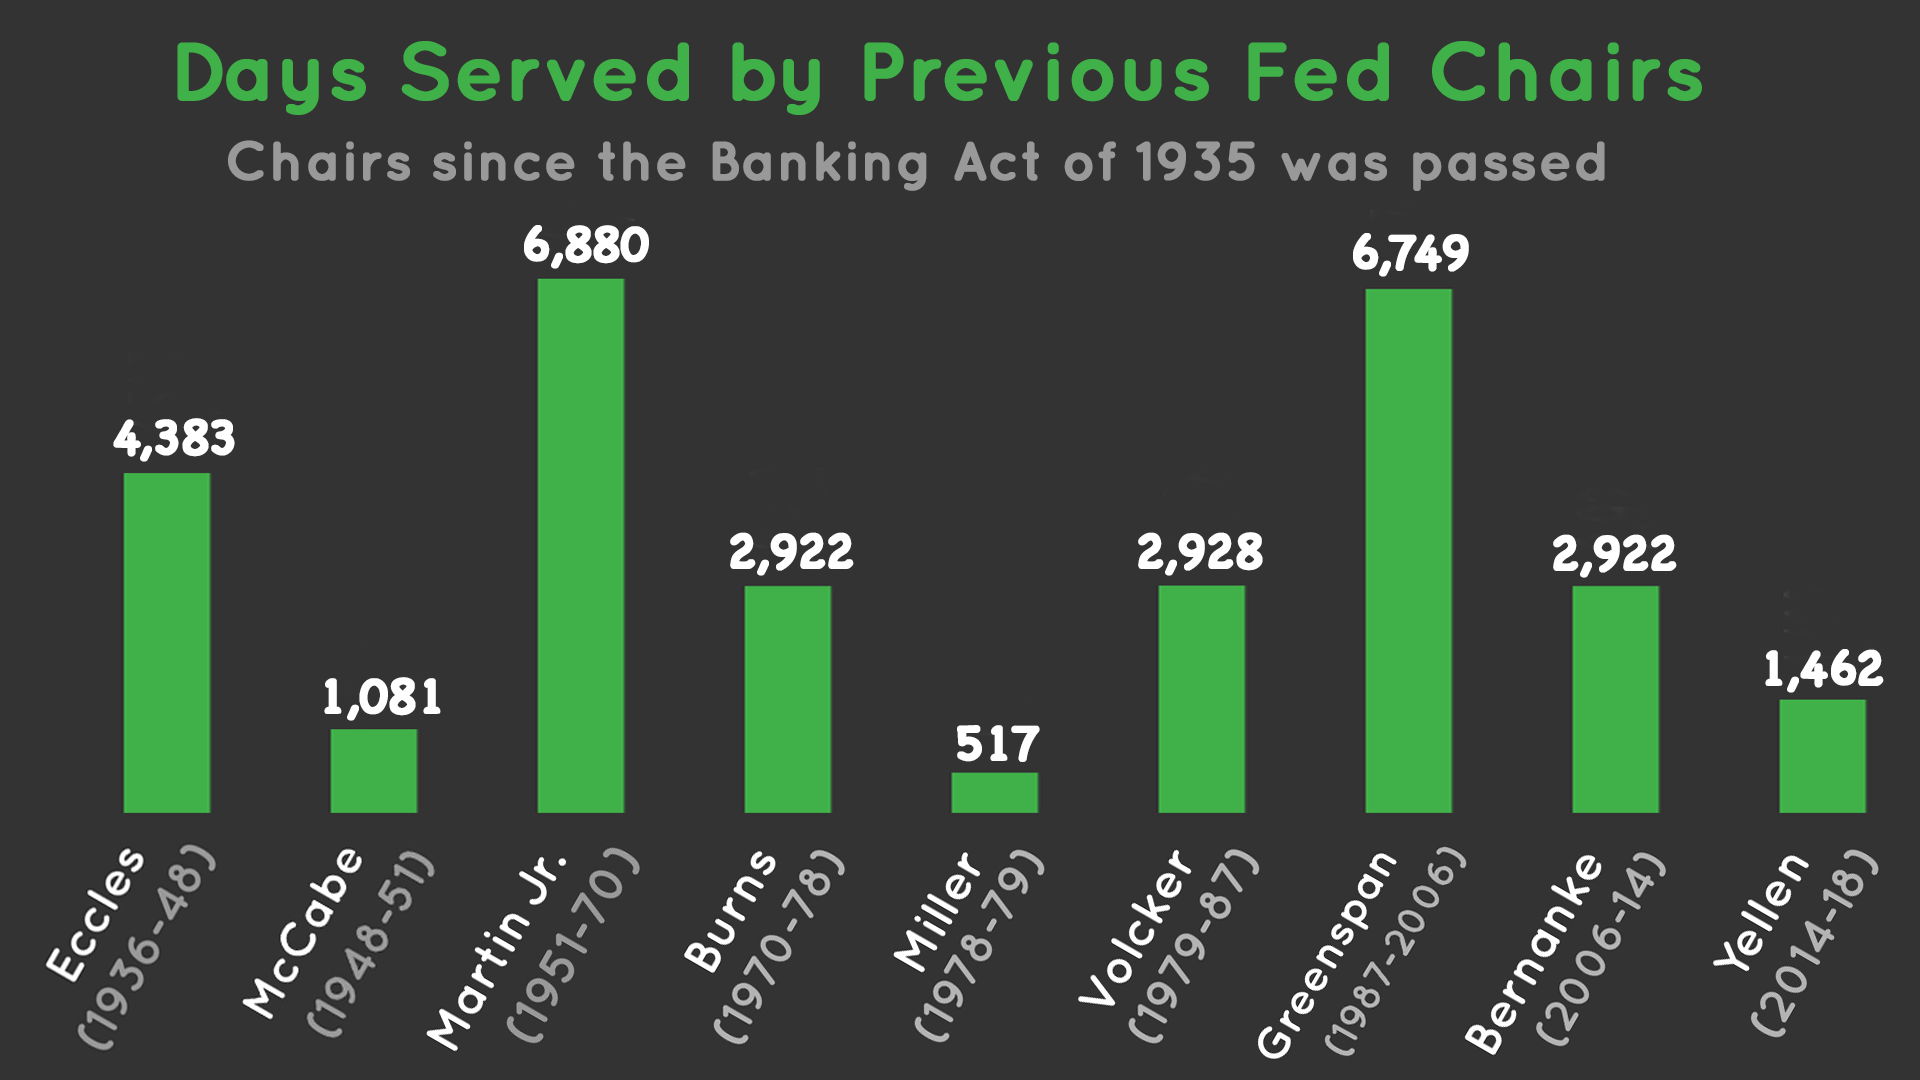 length-of-former-federal-reserve-chair-terms-board-of-governors.png